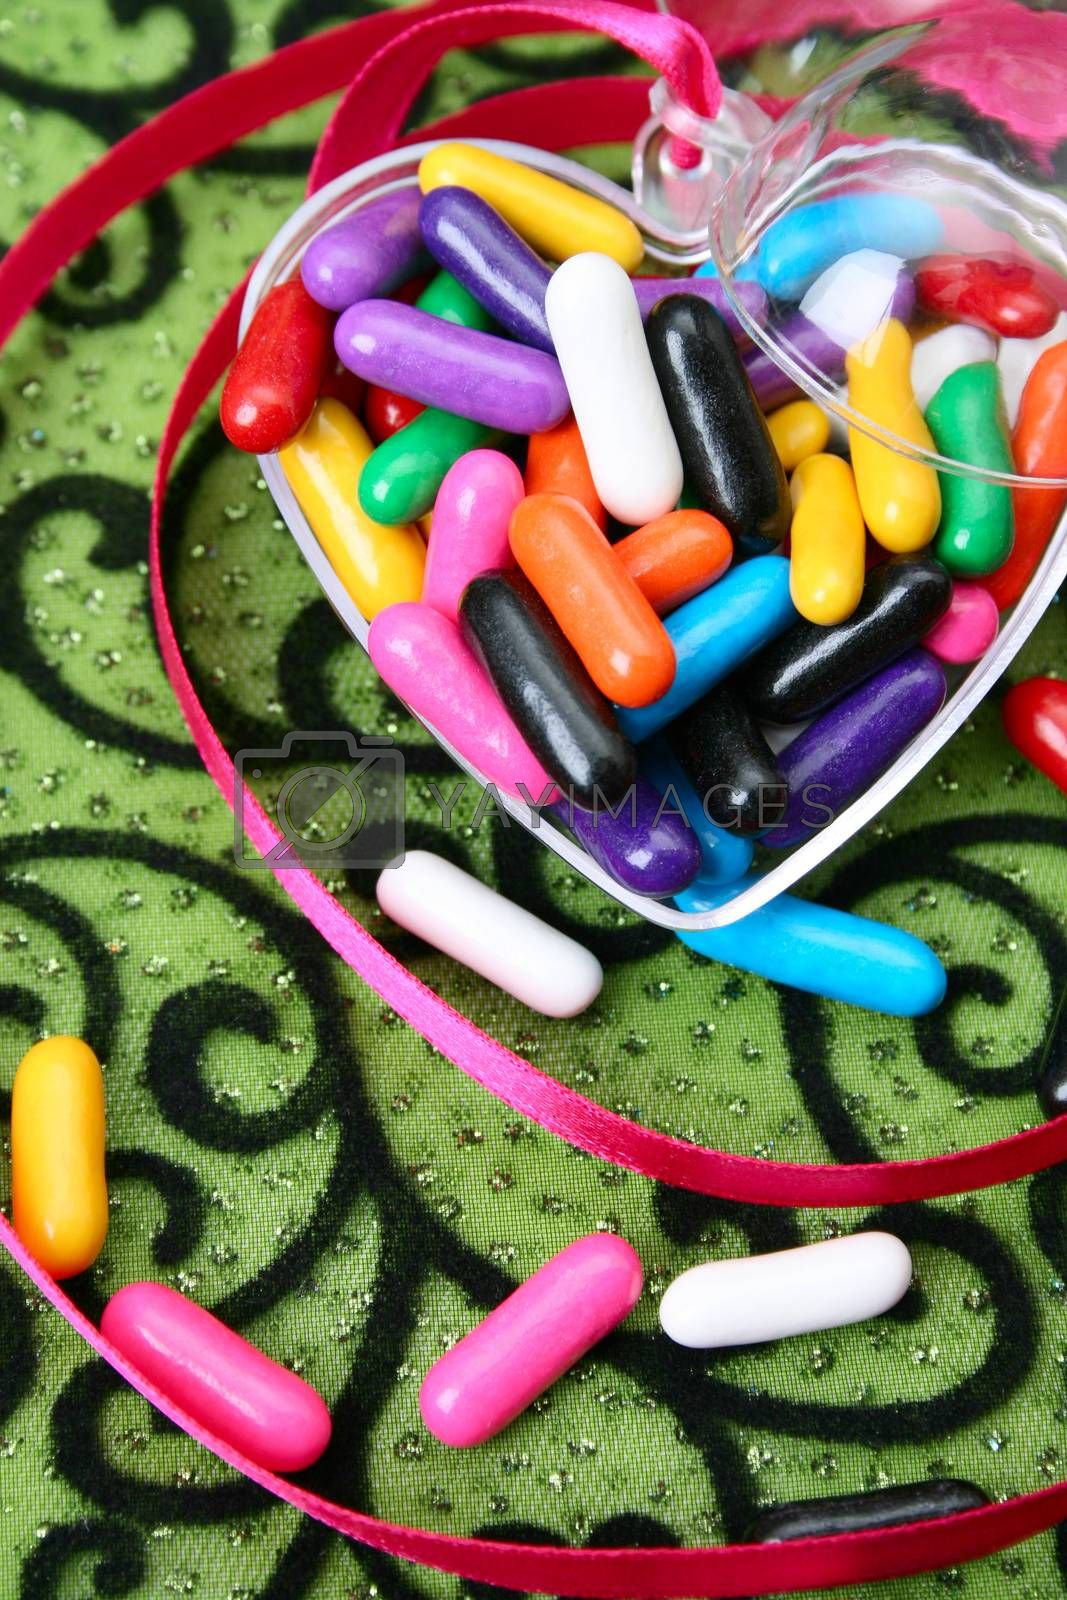 Colorful candies in a heart container on green background